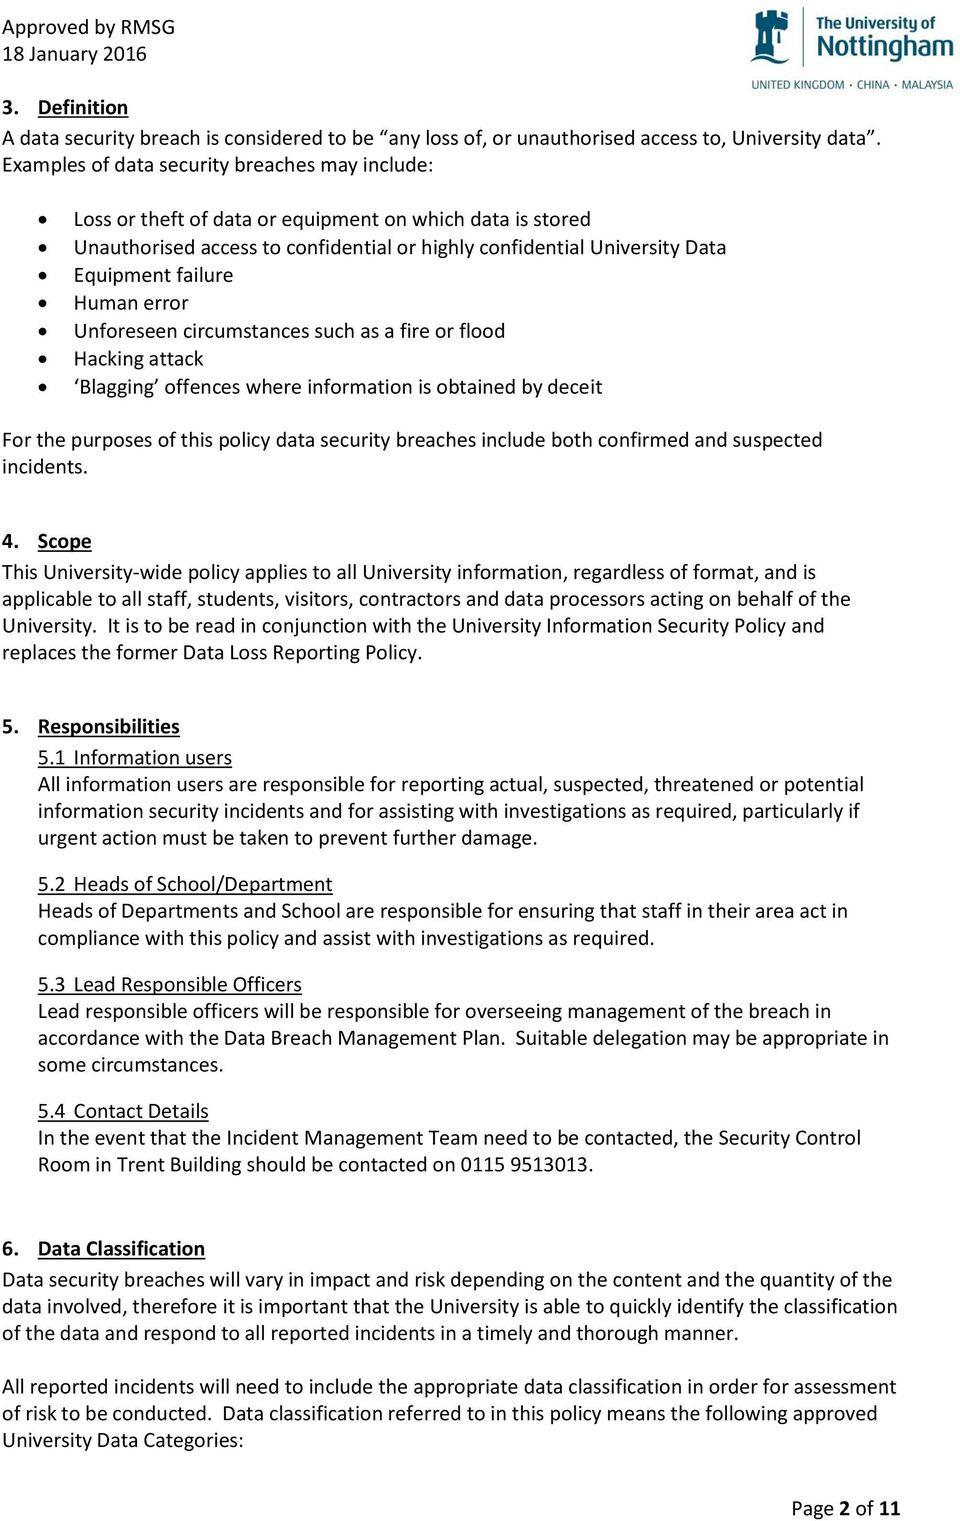 Data Security Breach Incident Management Policy Pdf Template Sample Human Error Unforeseen Circumstances Such As A Fire Or Flood Hacking Attack Blagging Offences Where Information